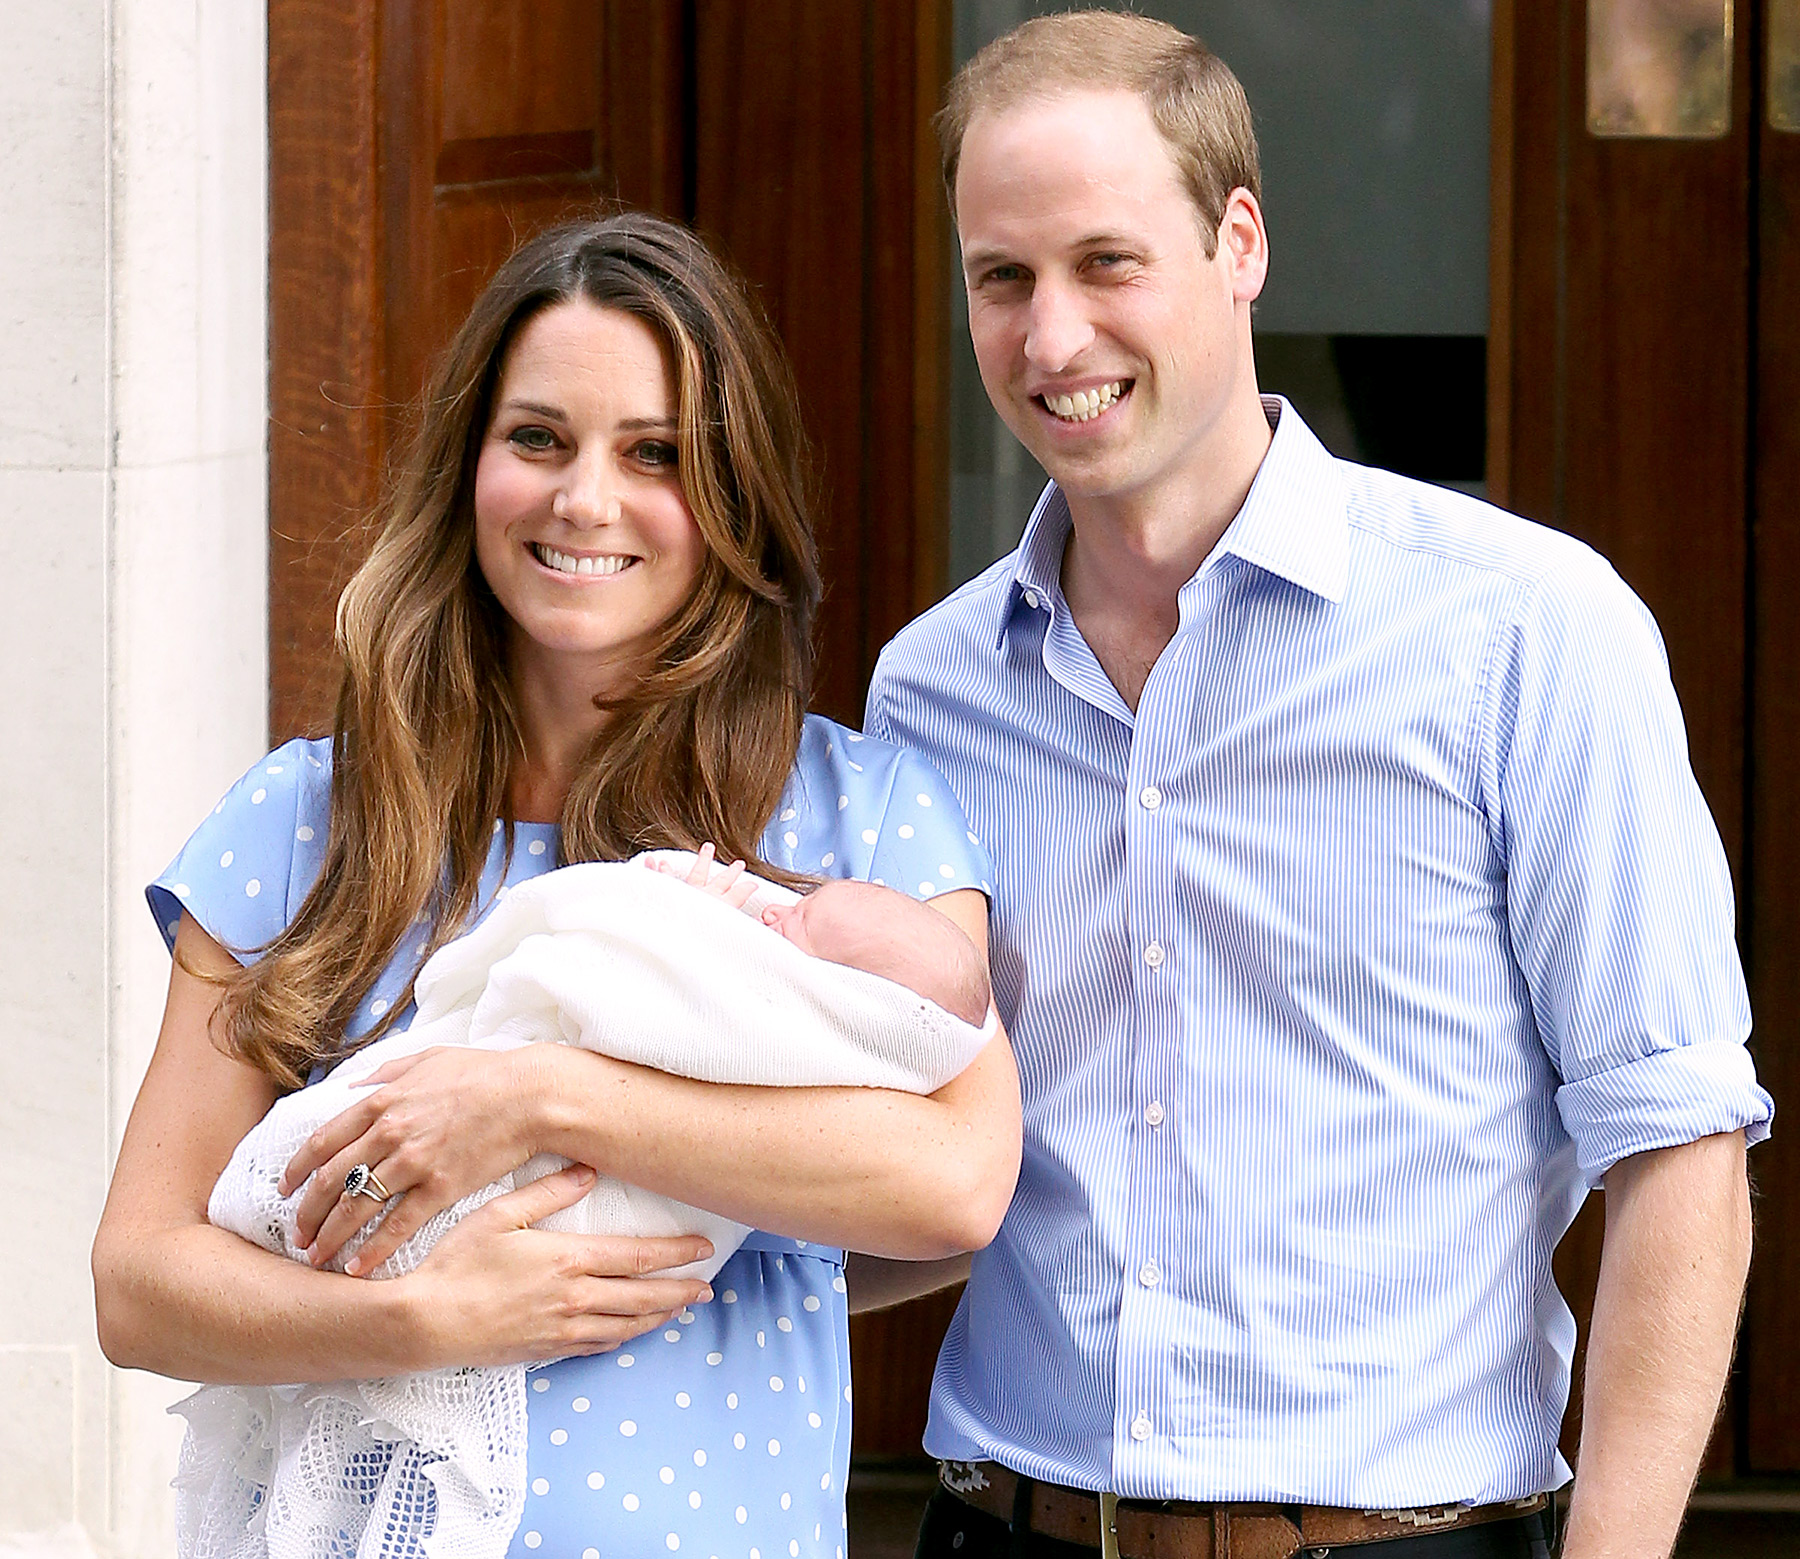 "Prince William and Duchess Kate welcomed their first baby into the world at St. Mary's Hospital on July 22, 2013. ""It's very emotional,"" the Duchess gushed of becoming a mom."